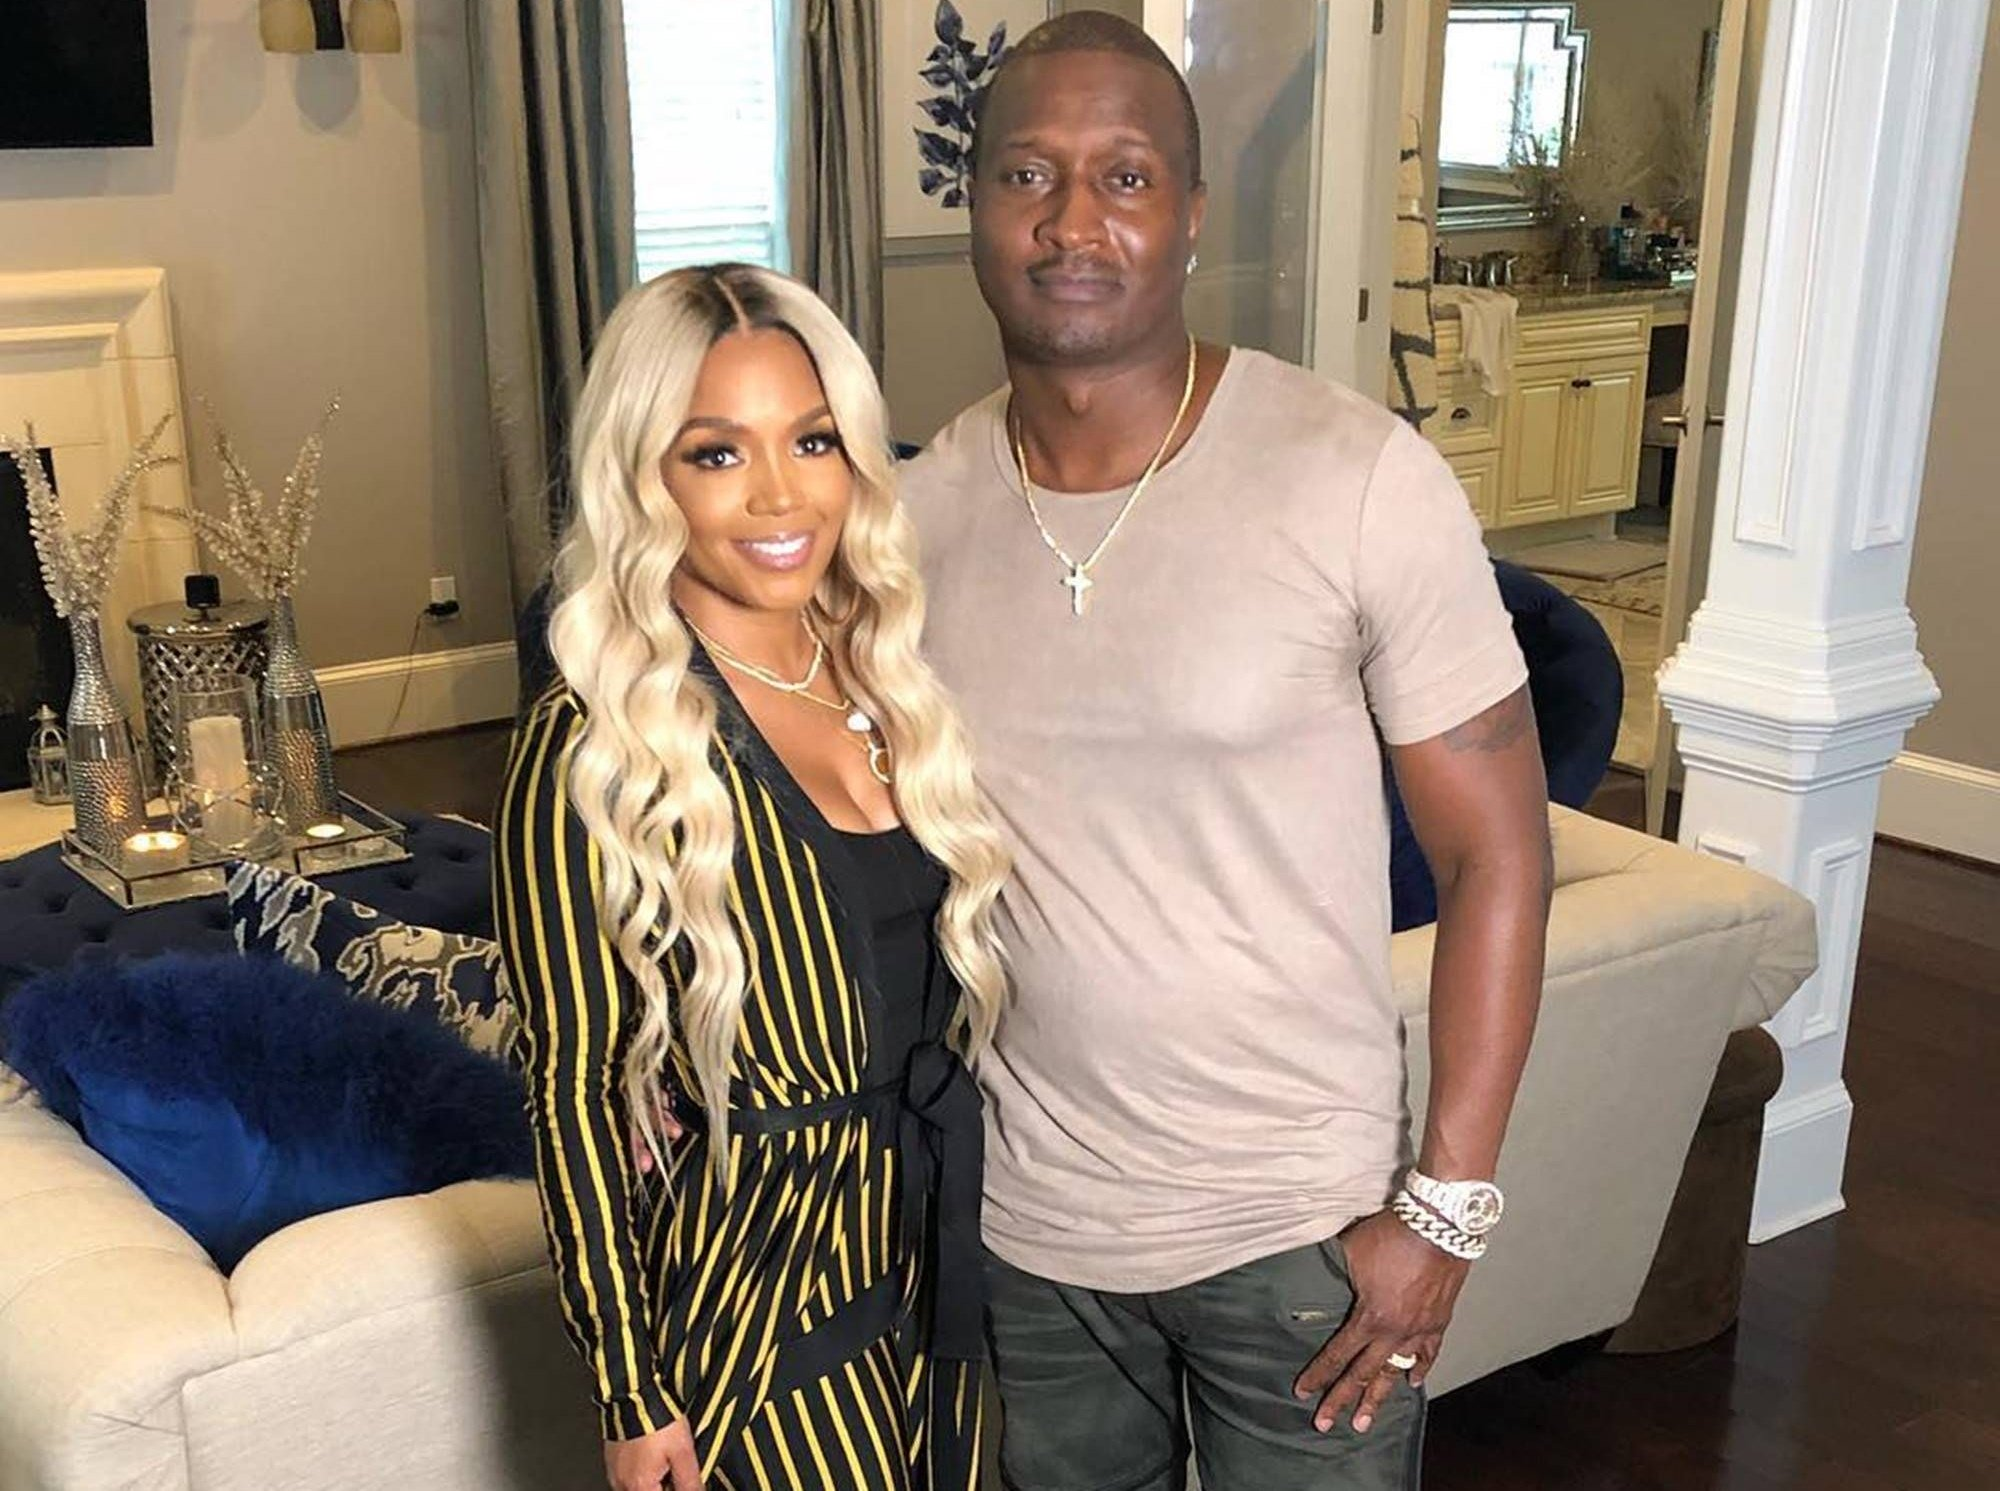 """rasheeda-frost-films-at-her-pressed-boutique-check-out-the-clip-she-shared"""